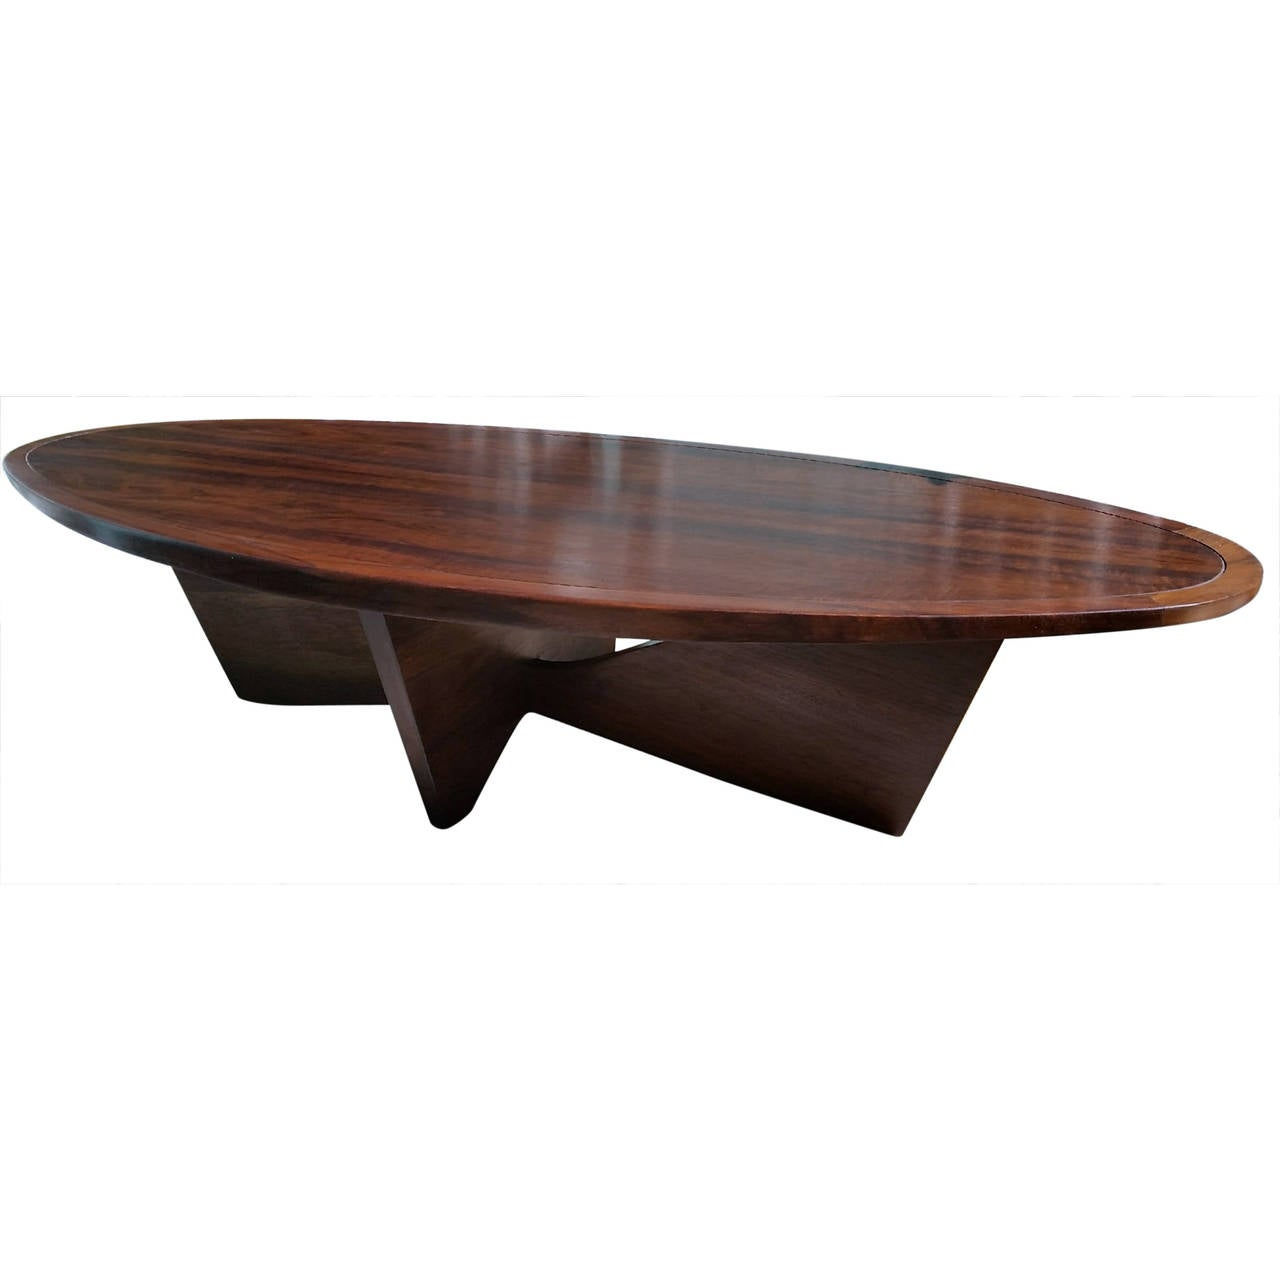 Rare george nakashima oval coffee table bow tie base widdicomb 1958 at 1stdibs Bases for coffee tables